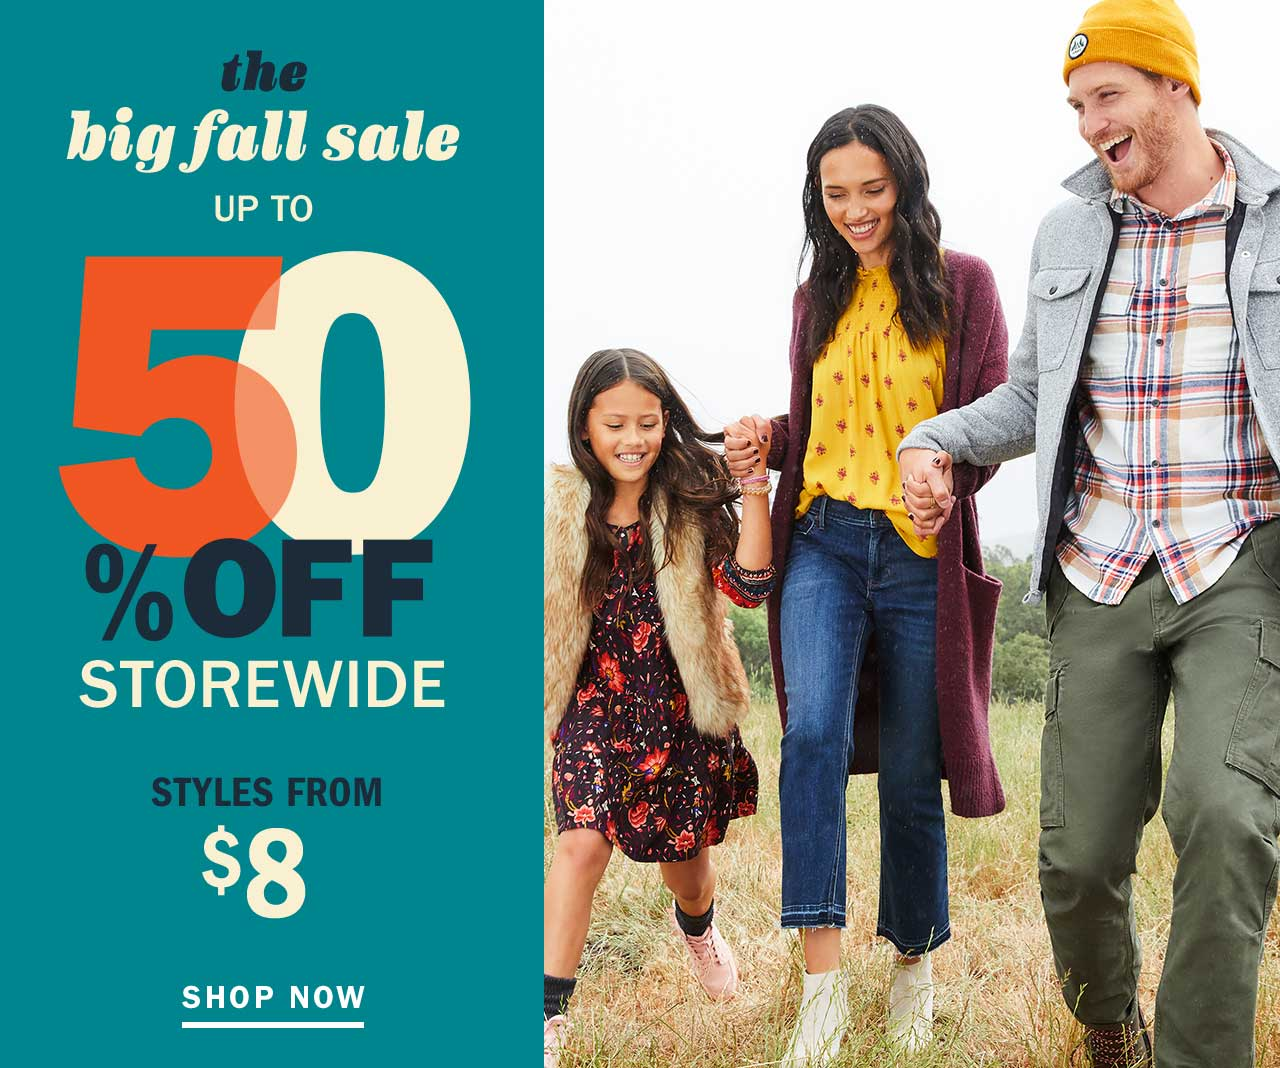 the big fall sale | UP TO 50% OFF STOREWIDE | STYLES FROM $8 | SHOP NOW